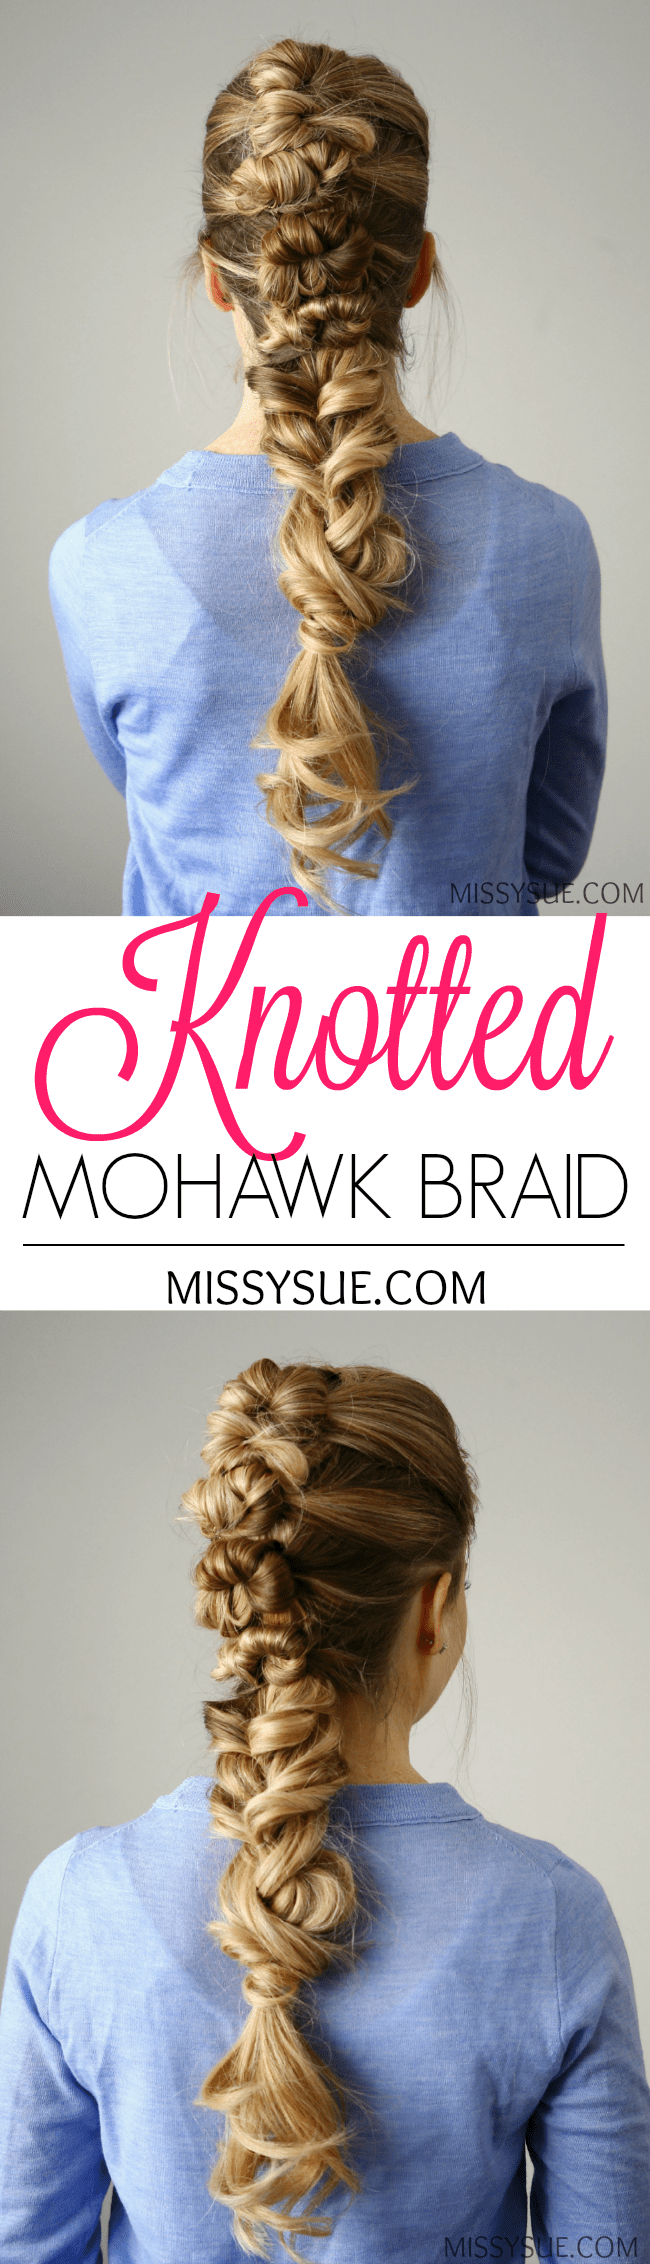 Knotted Mohawk Braid